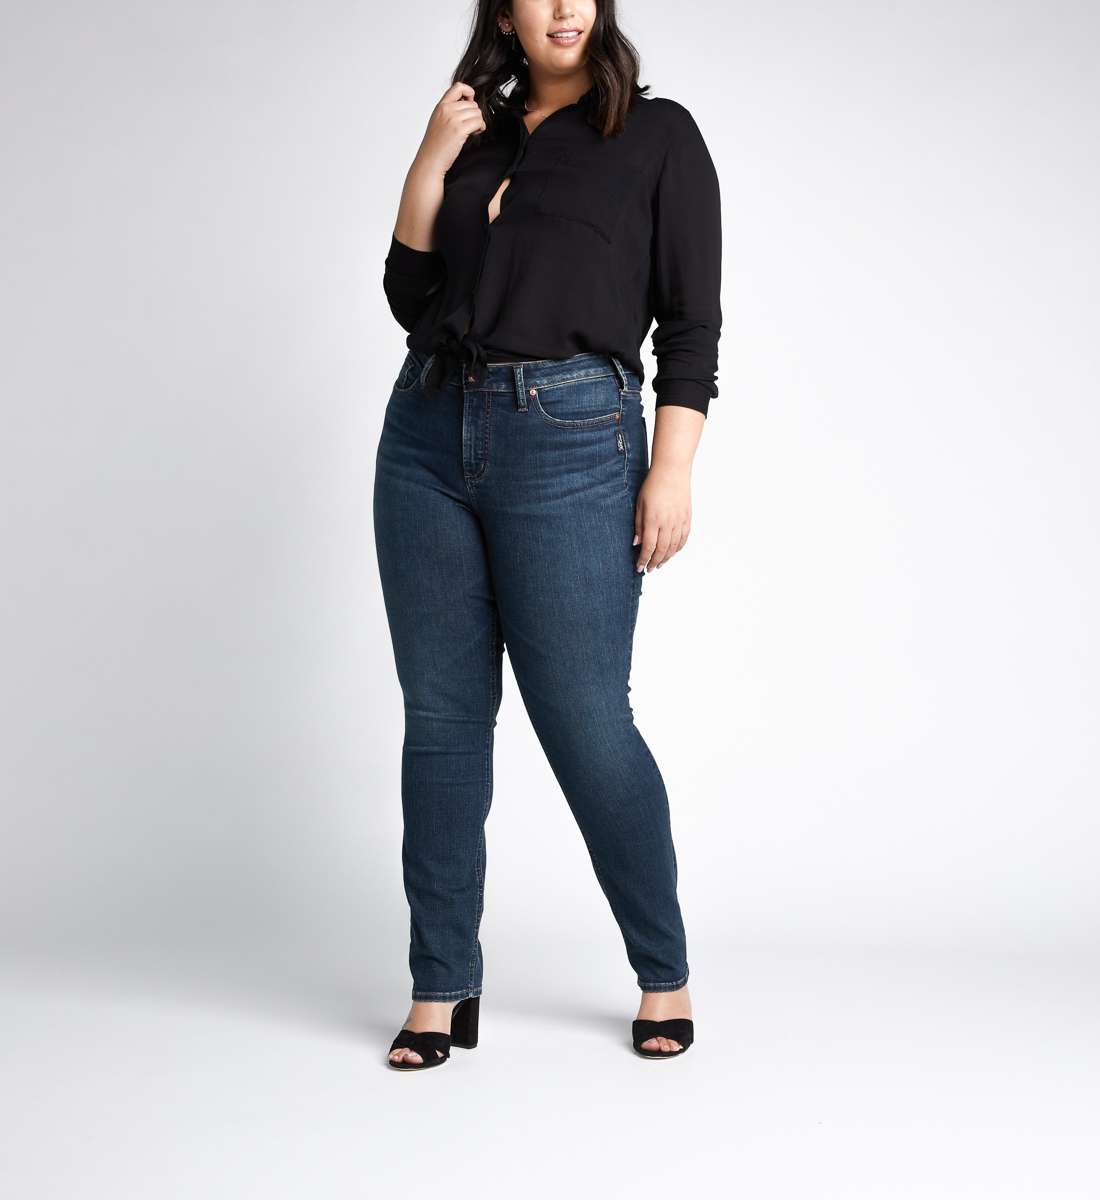 Avery High Rise Straight Leg Jeans Plus Size Alt Image 1